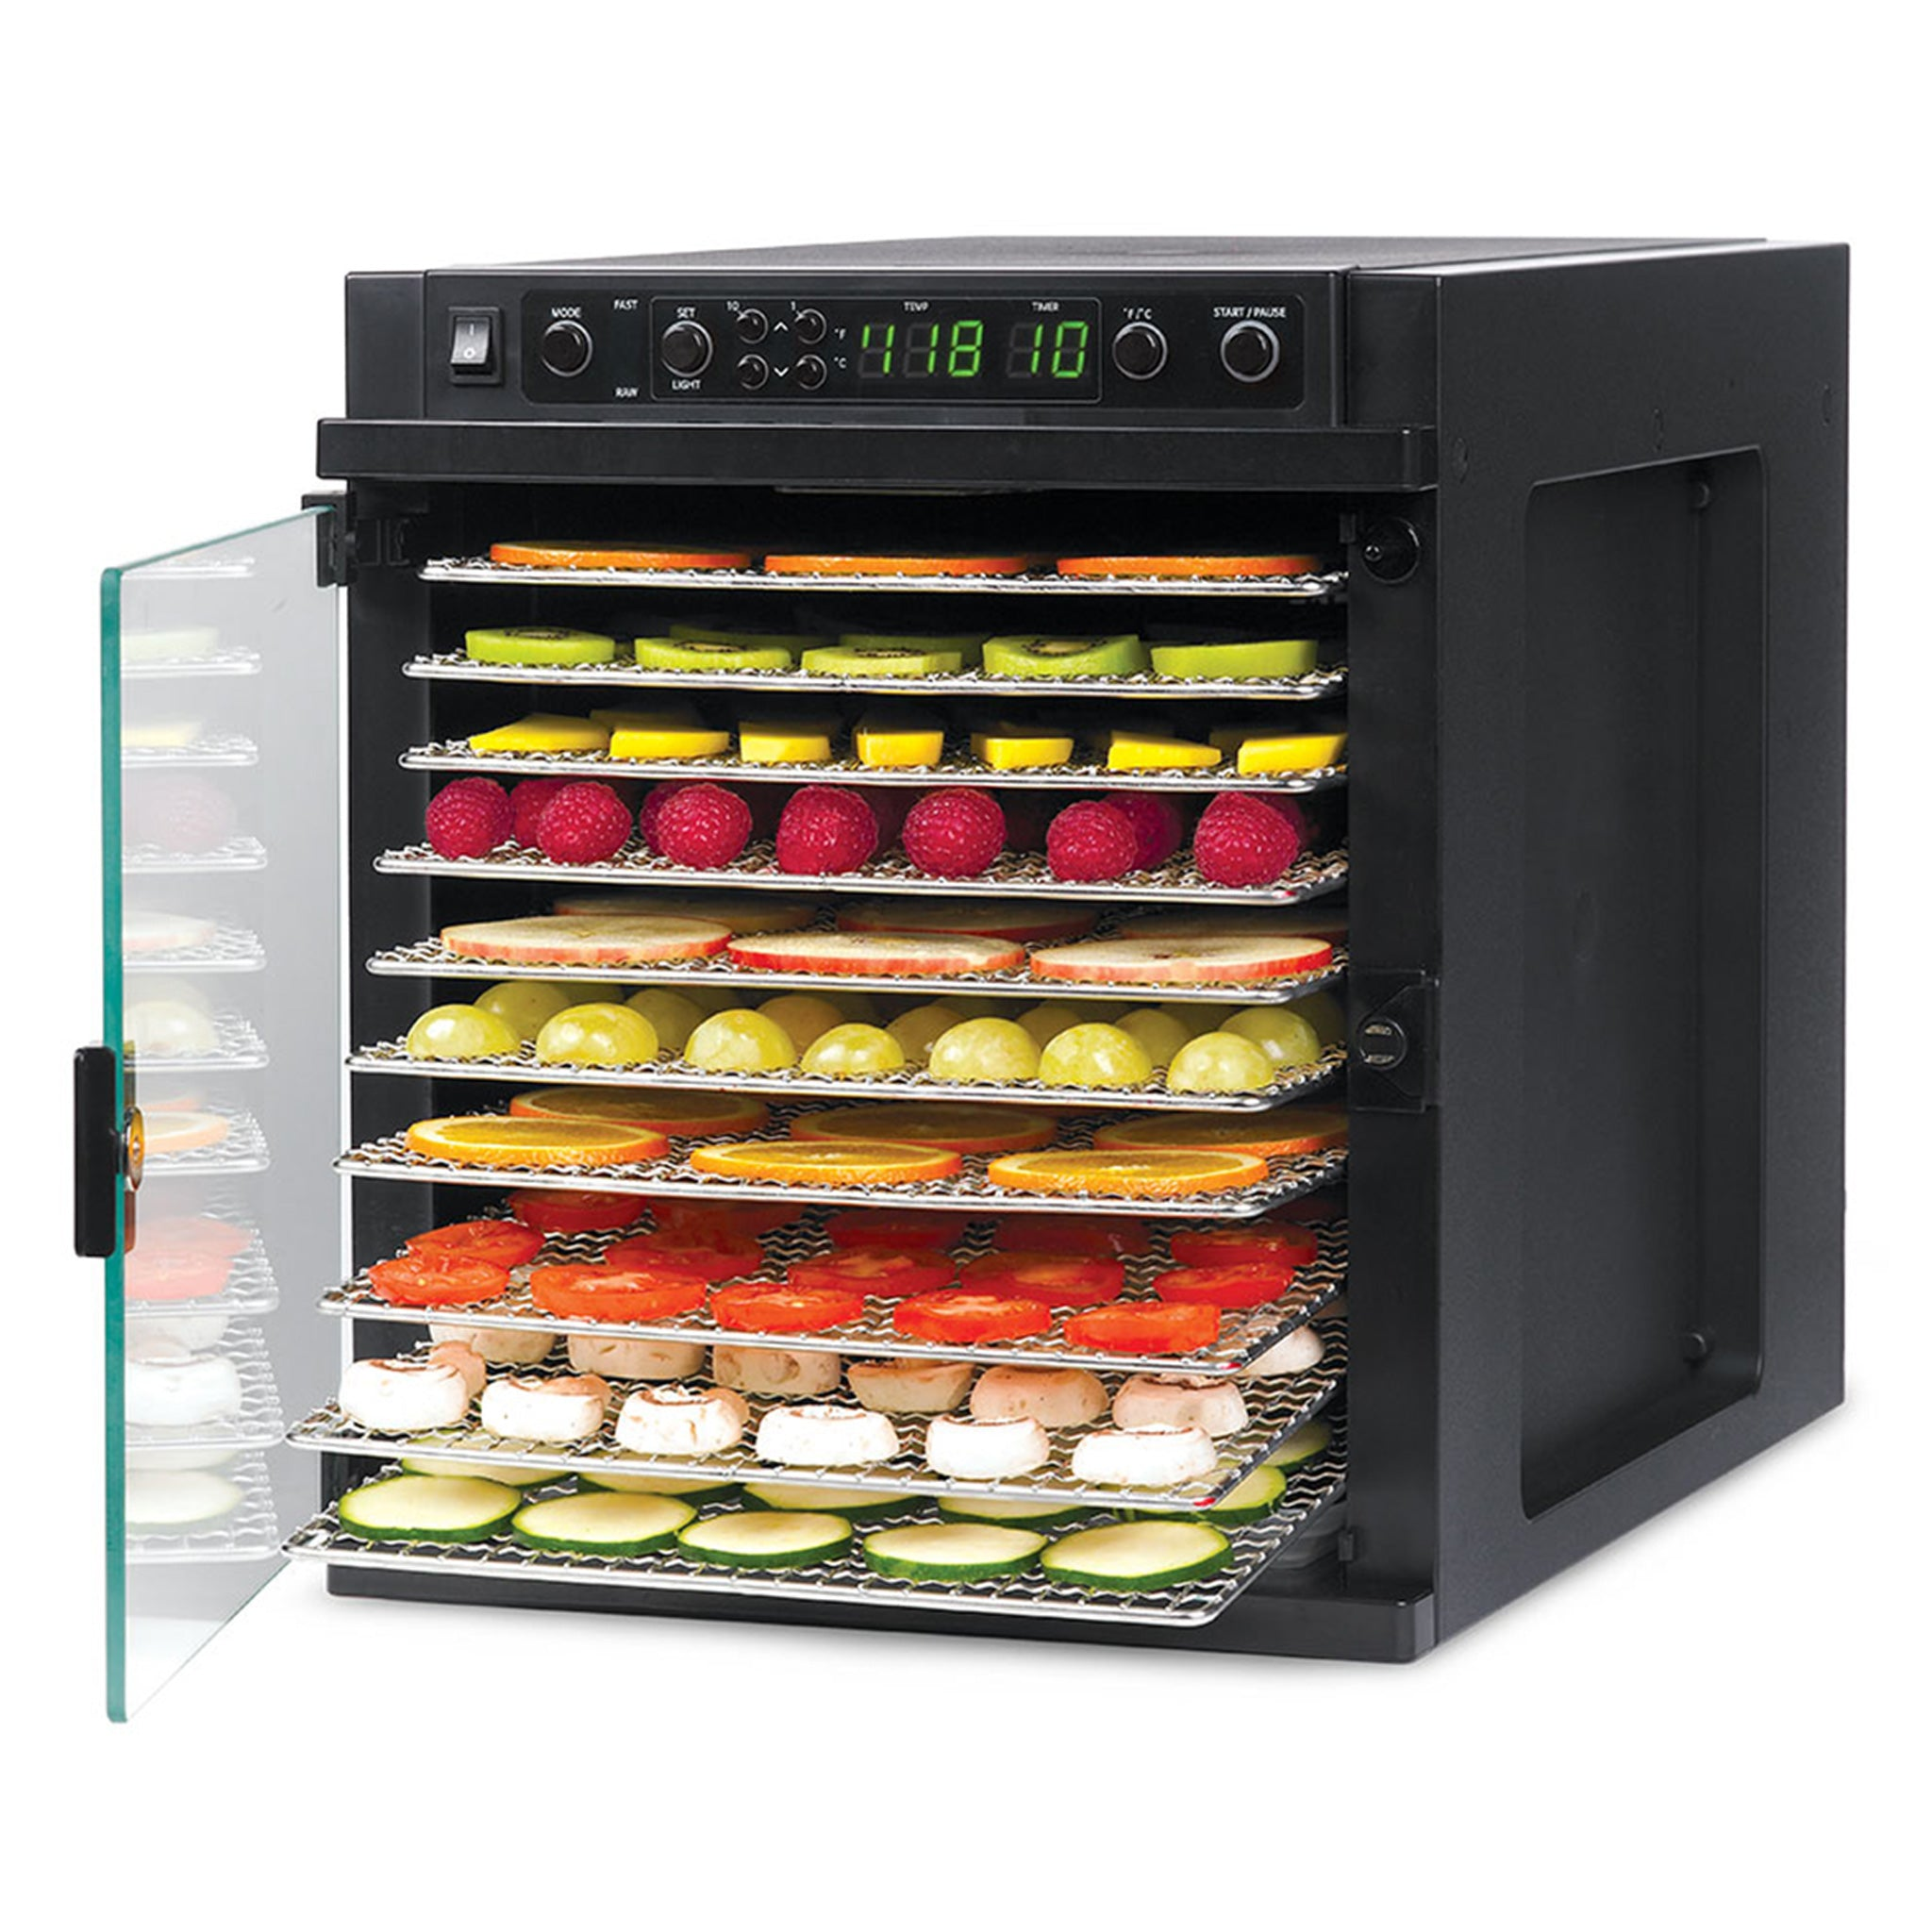 Sedona Express Food Dehydrator with Stainless Steel Trays SDE-S6780-B - Tribest